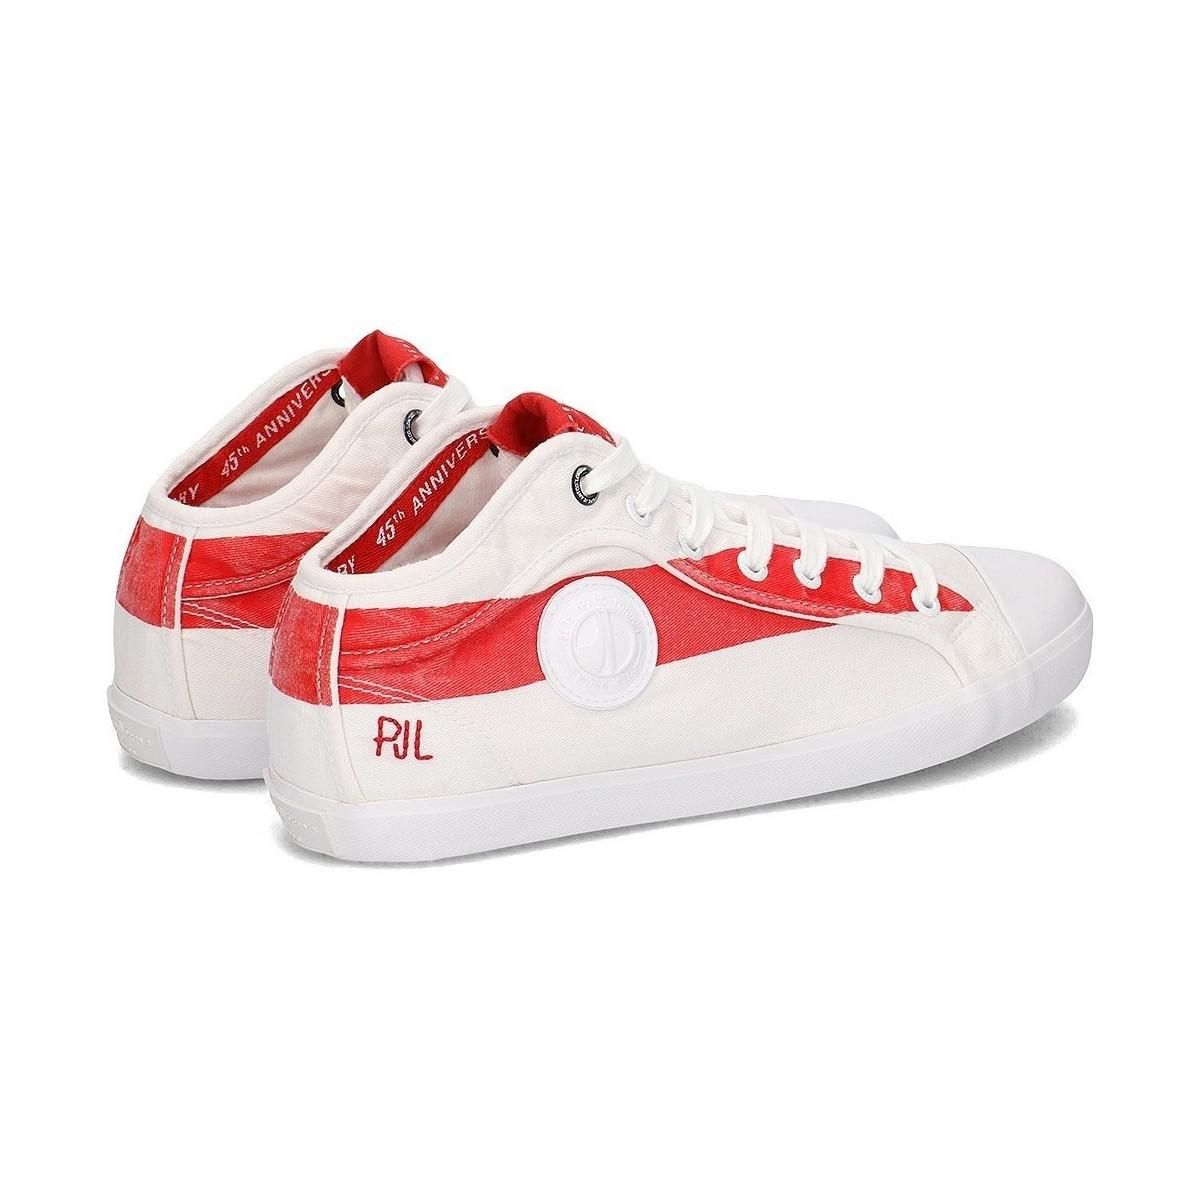 Pepe Jeans IN 45 - Trainers - red SW8jRO21n